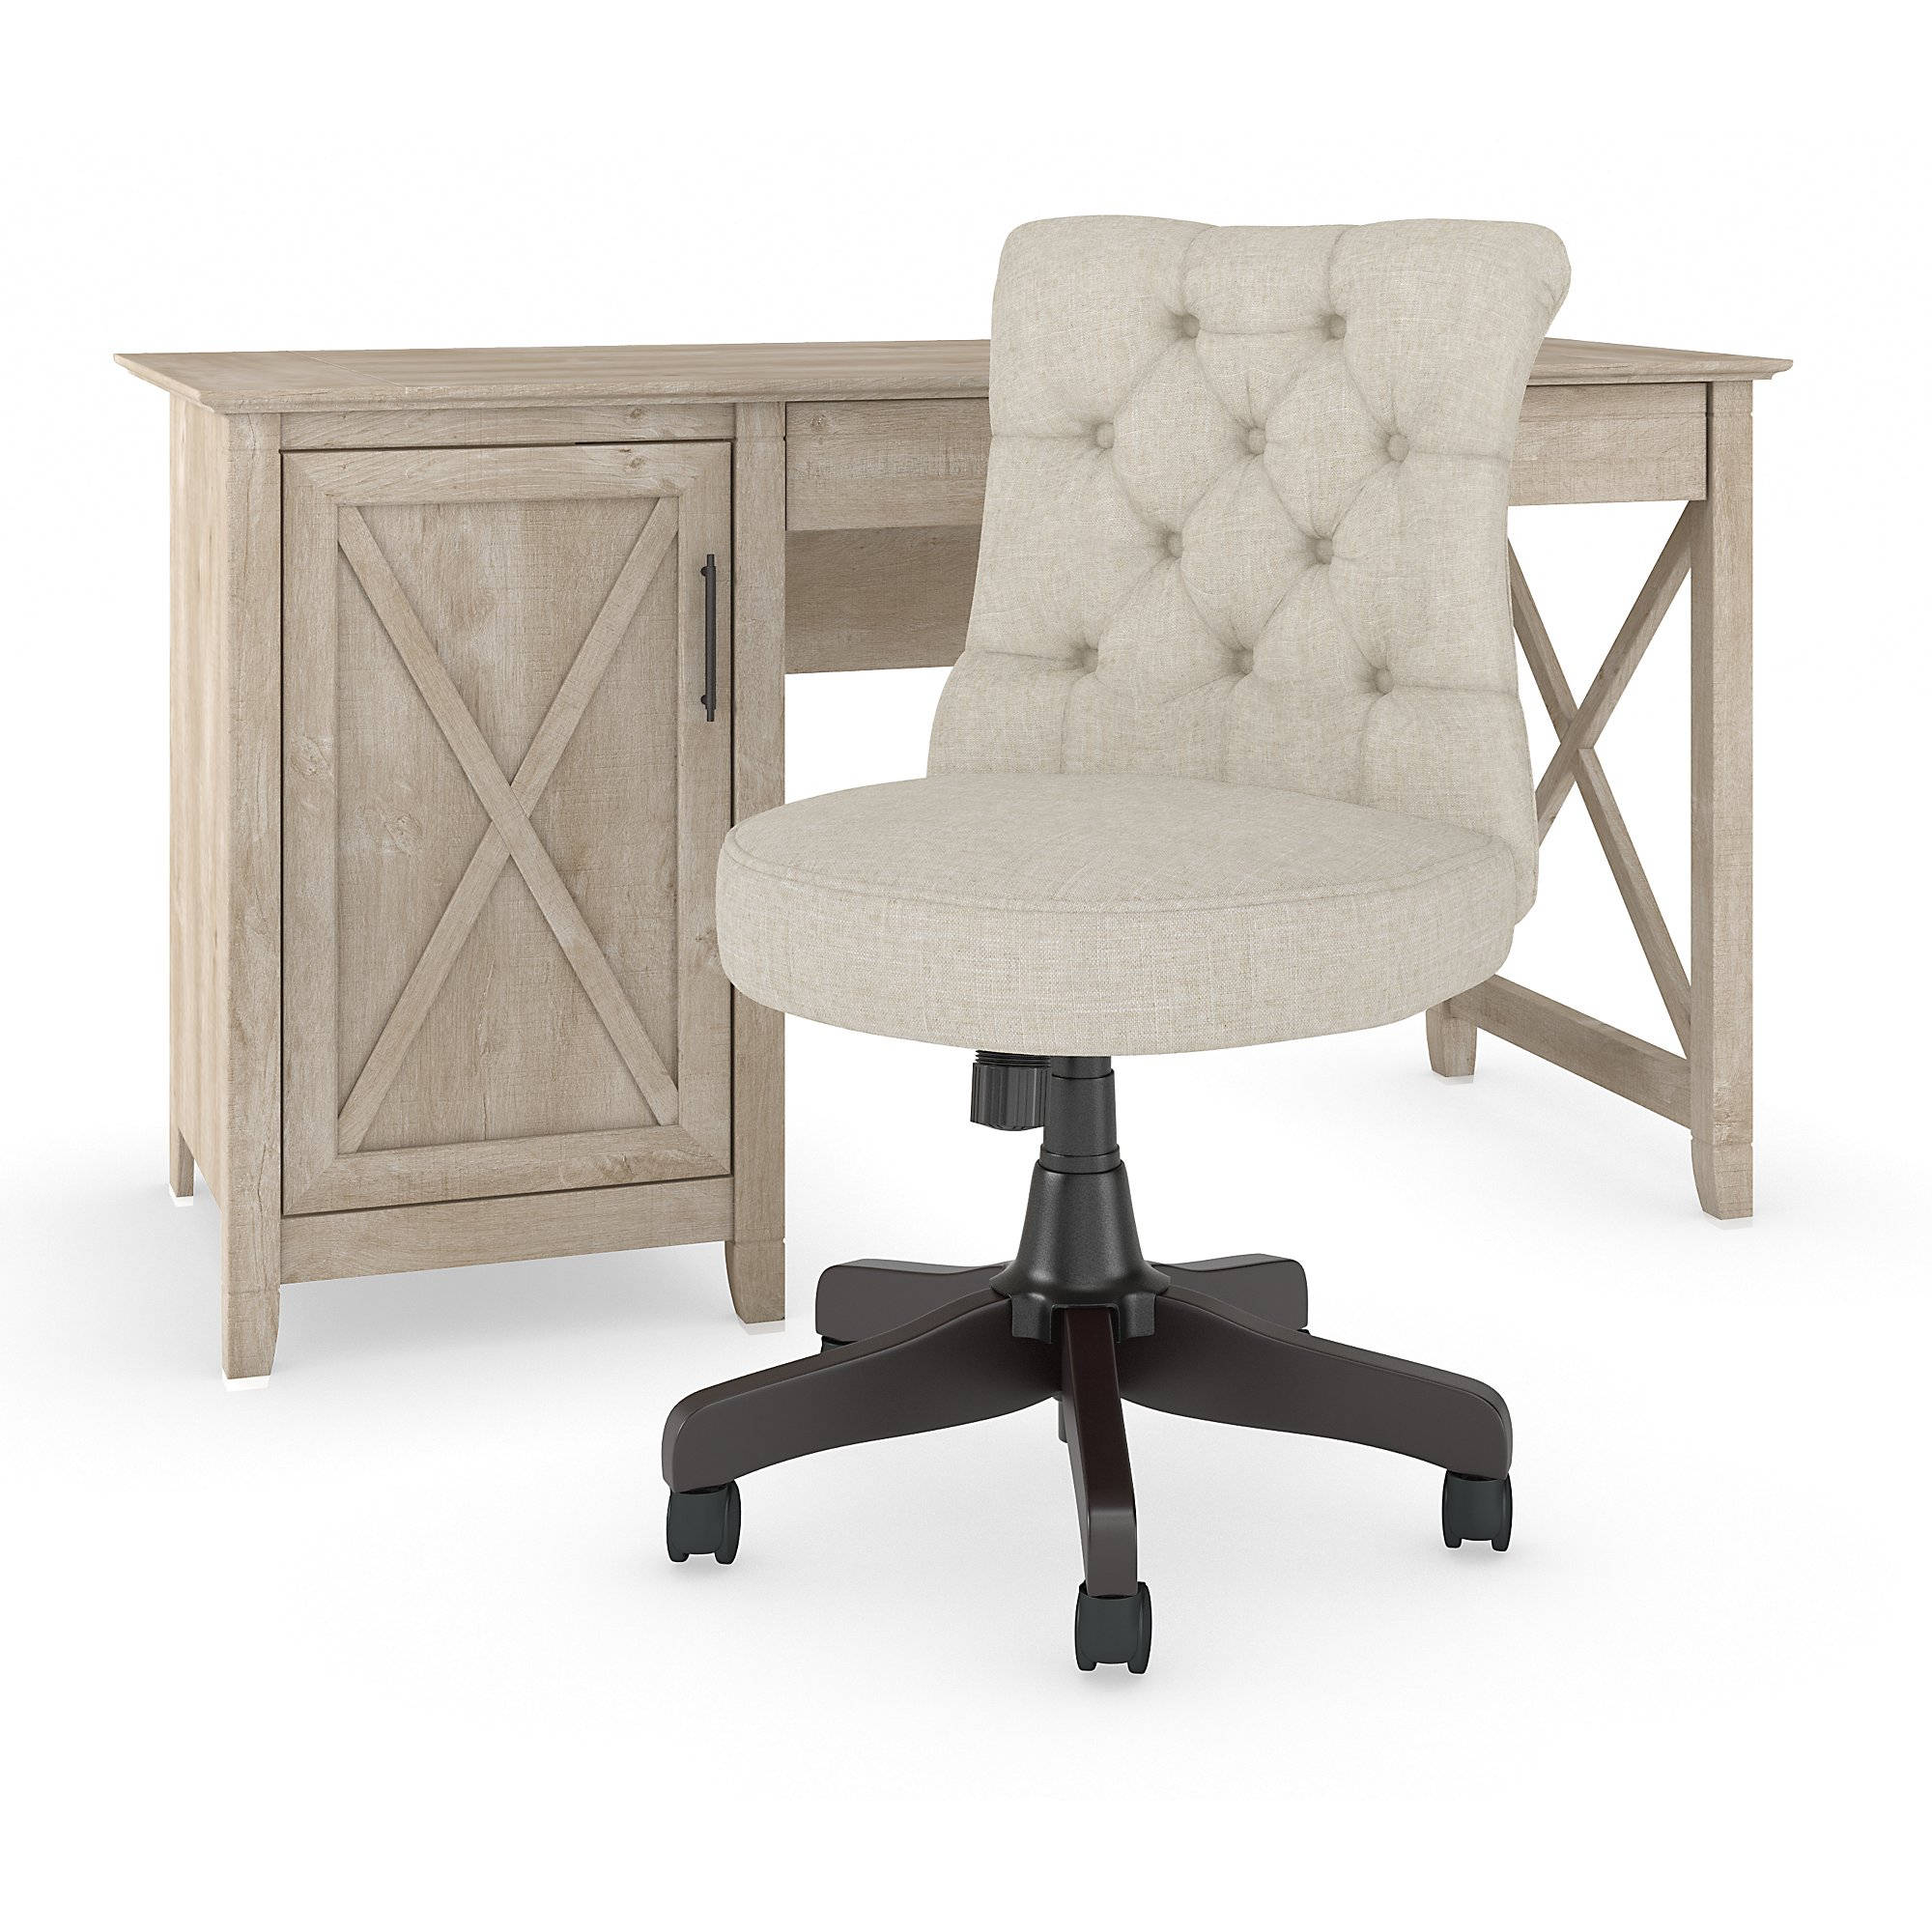 Enjoyable Bush Furniture Key West Washed Gray 2Pc Desk And Tufted Chair Set Ibusinesslaw Wood Chair Design Ideas Ibusinesslaworg